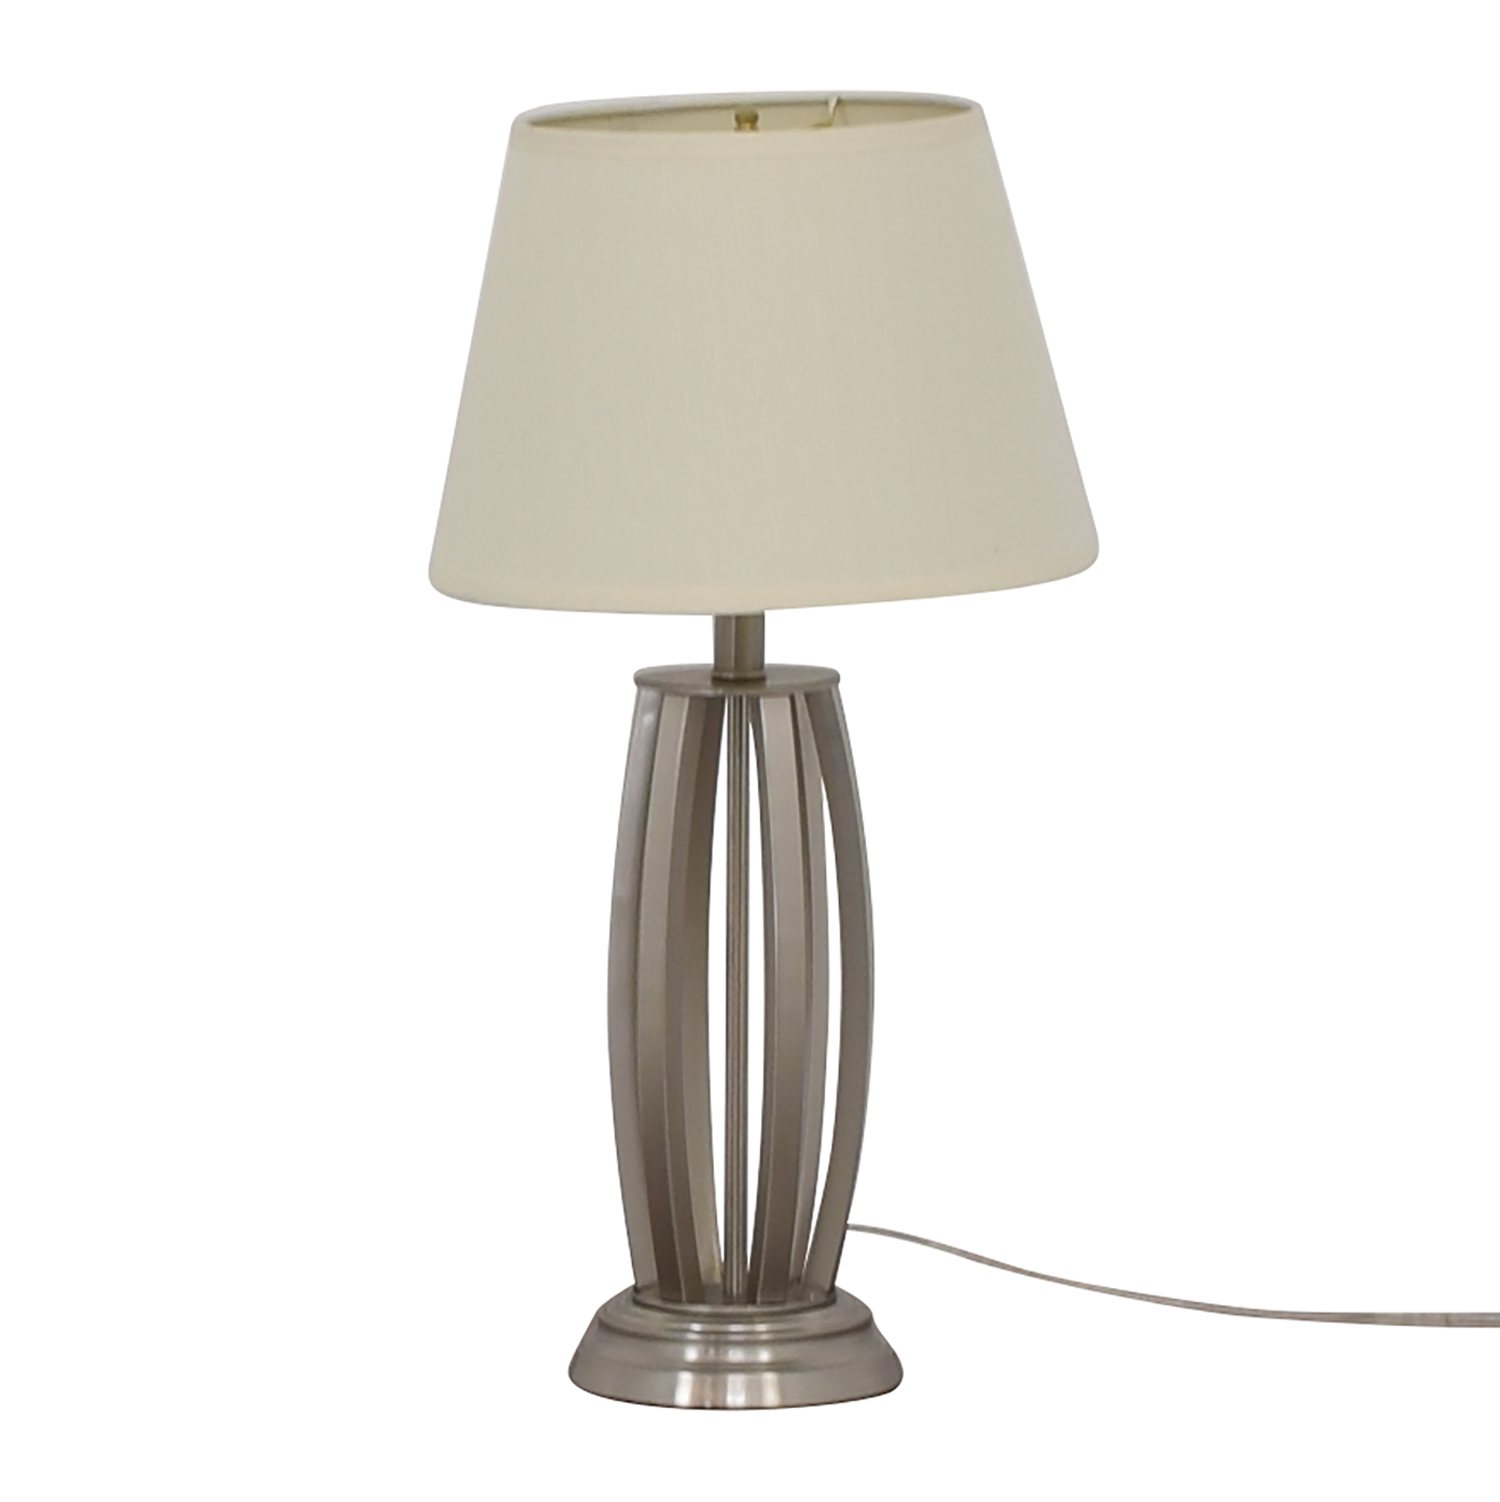 Chrome Table Lamp used